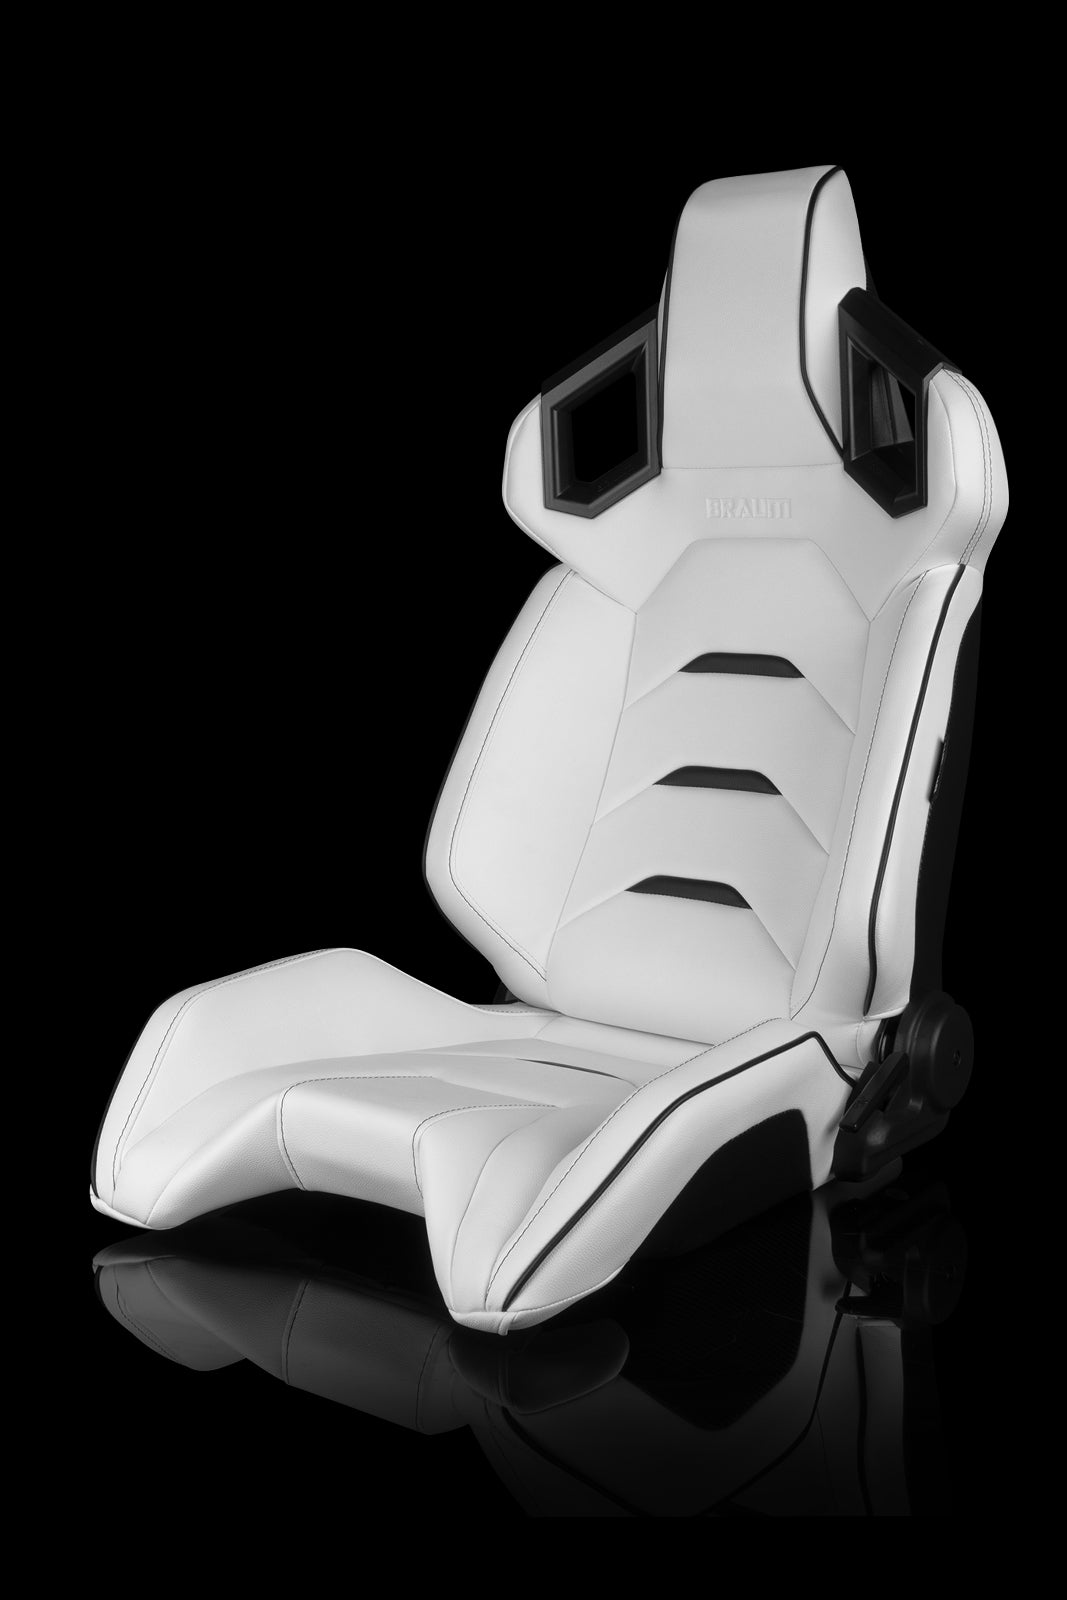 Image of Alpha X Series - White with Black Piping/Accents